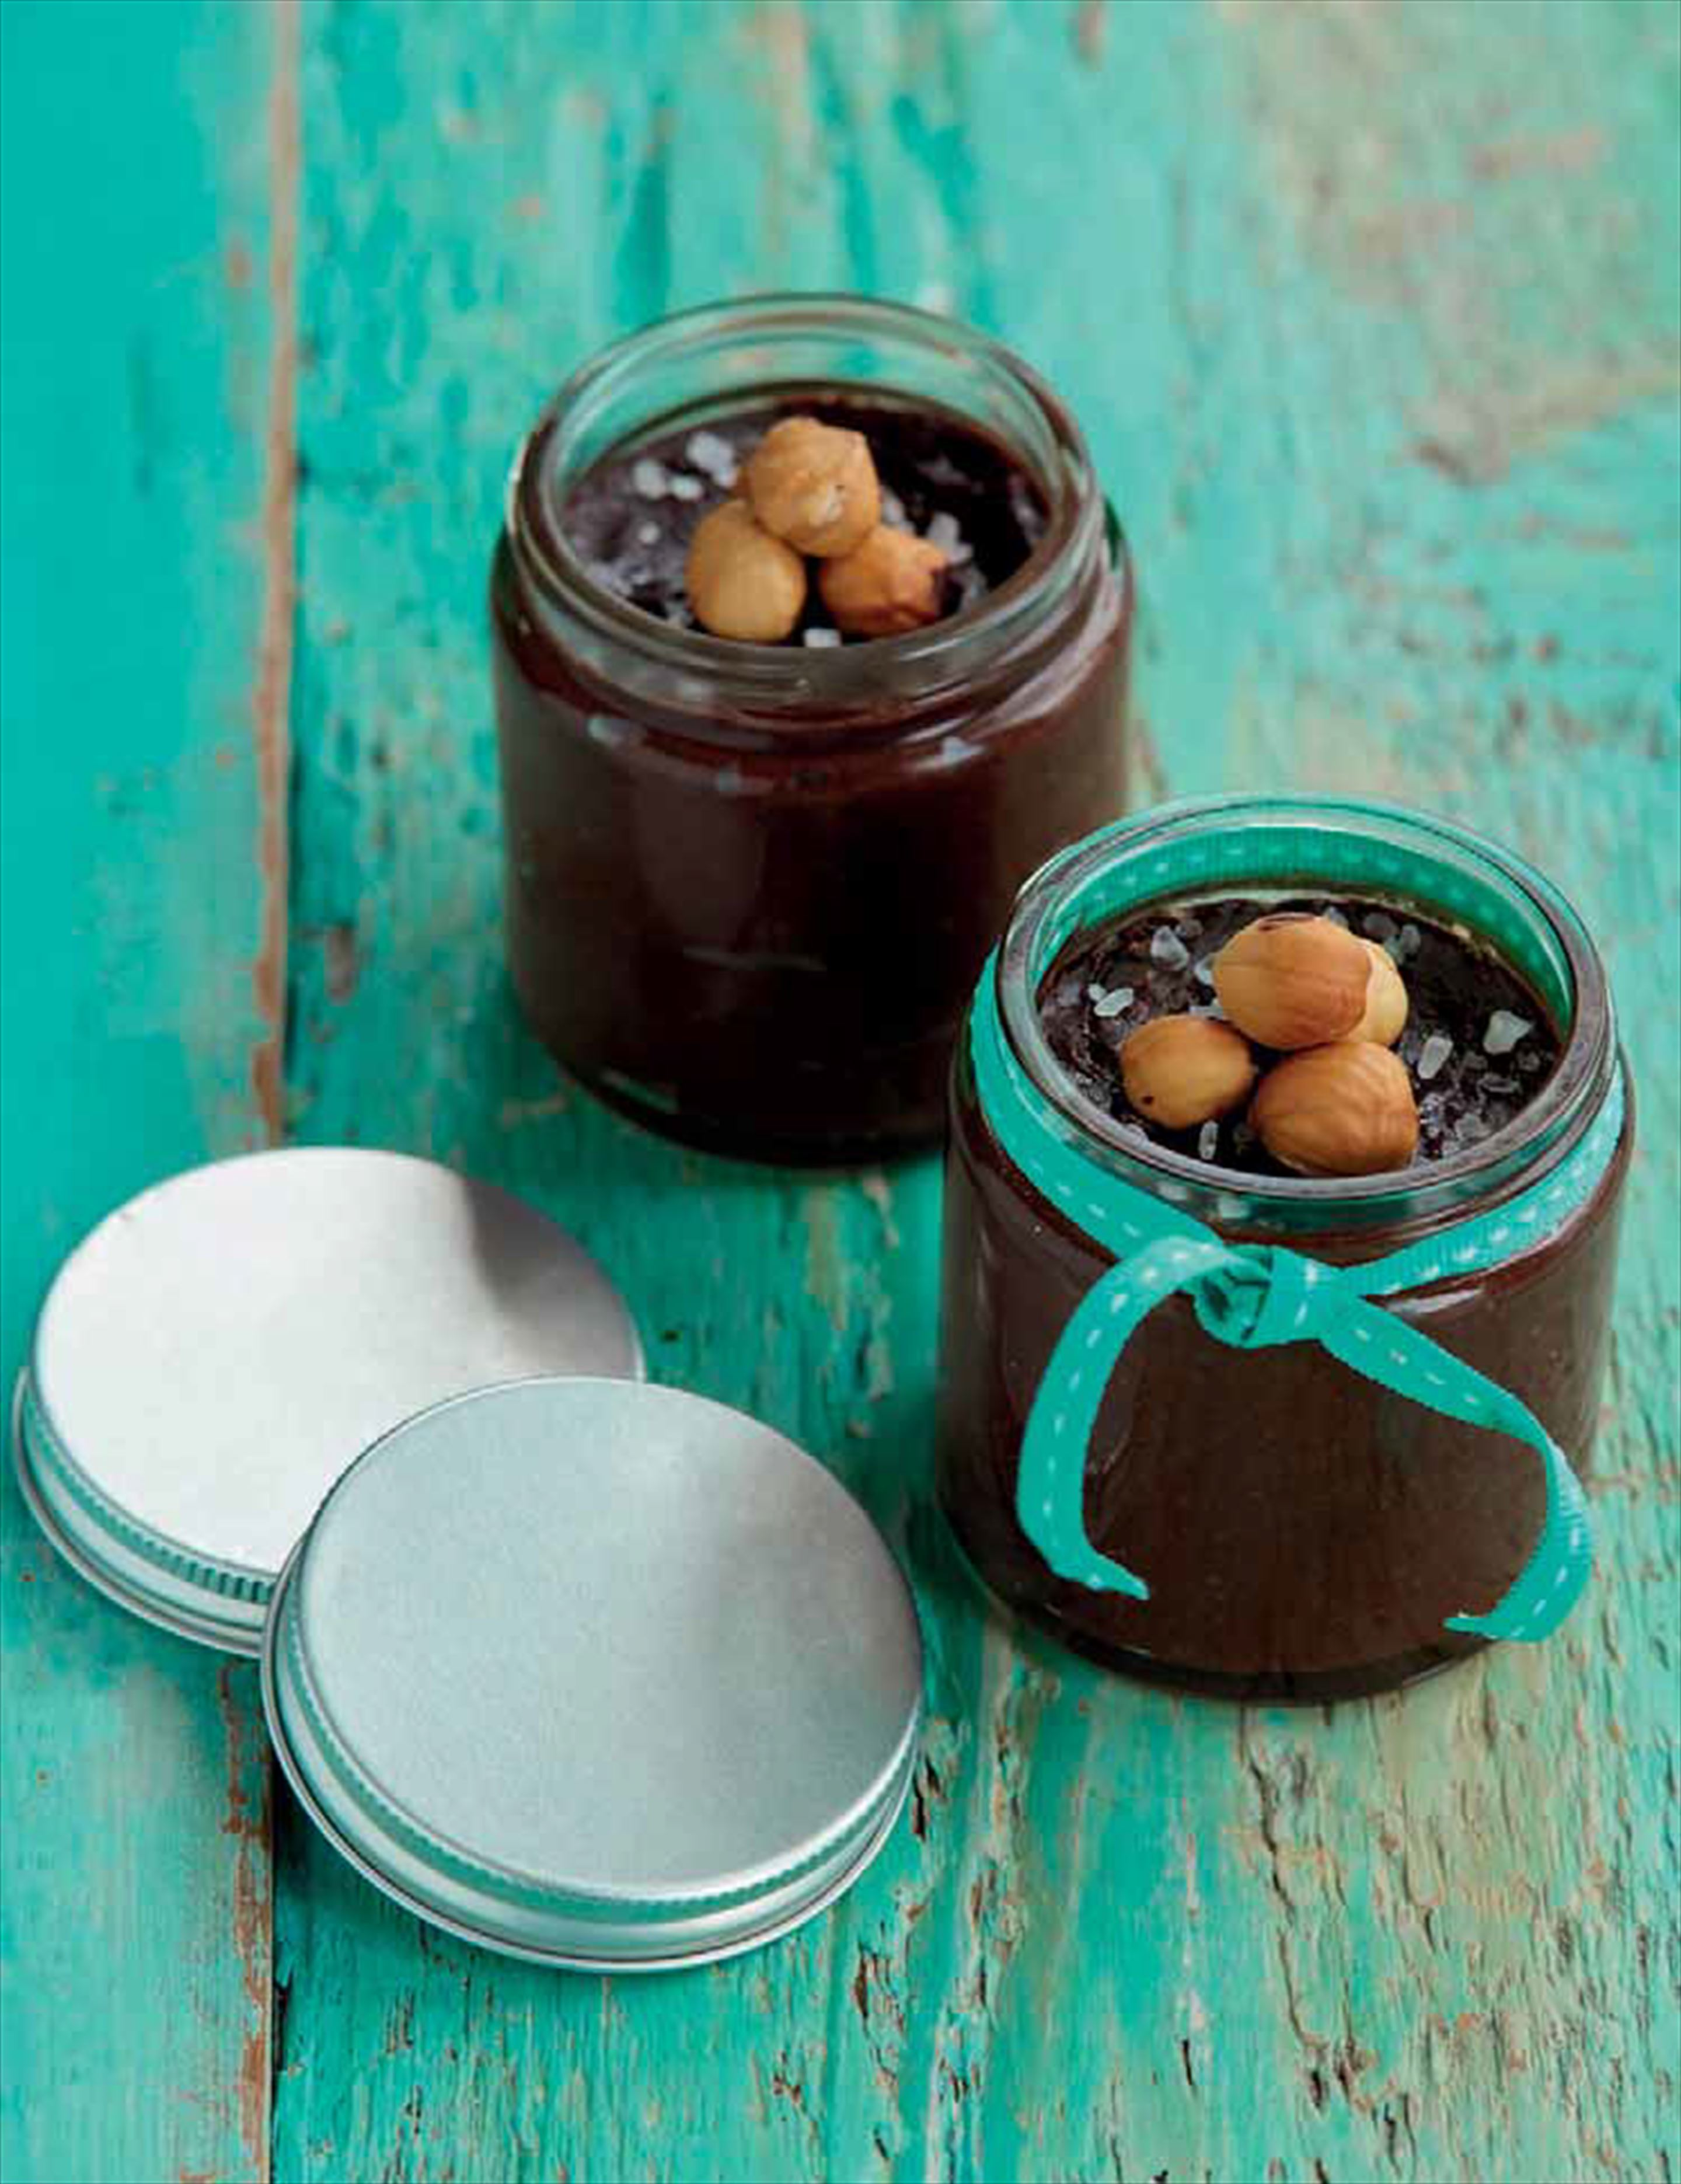 Hazelnut spread jars